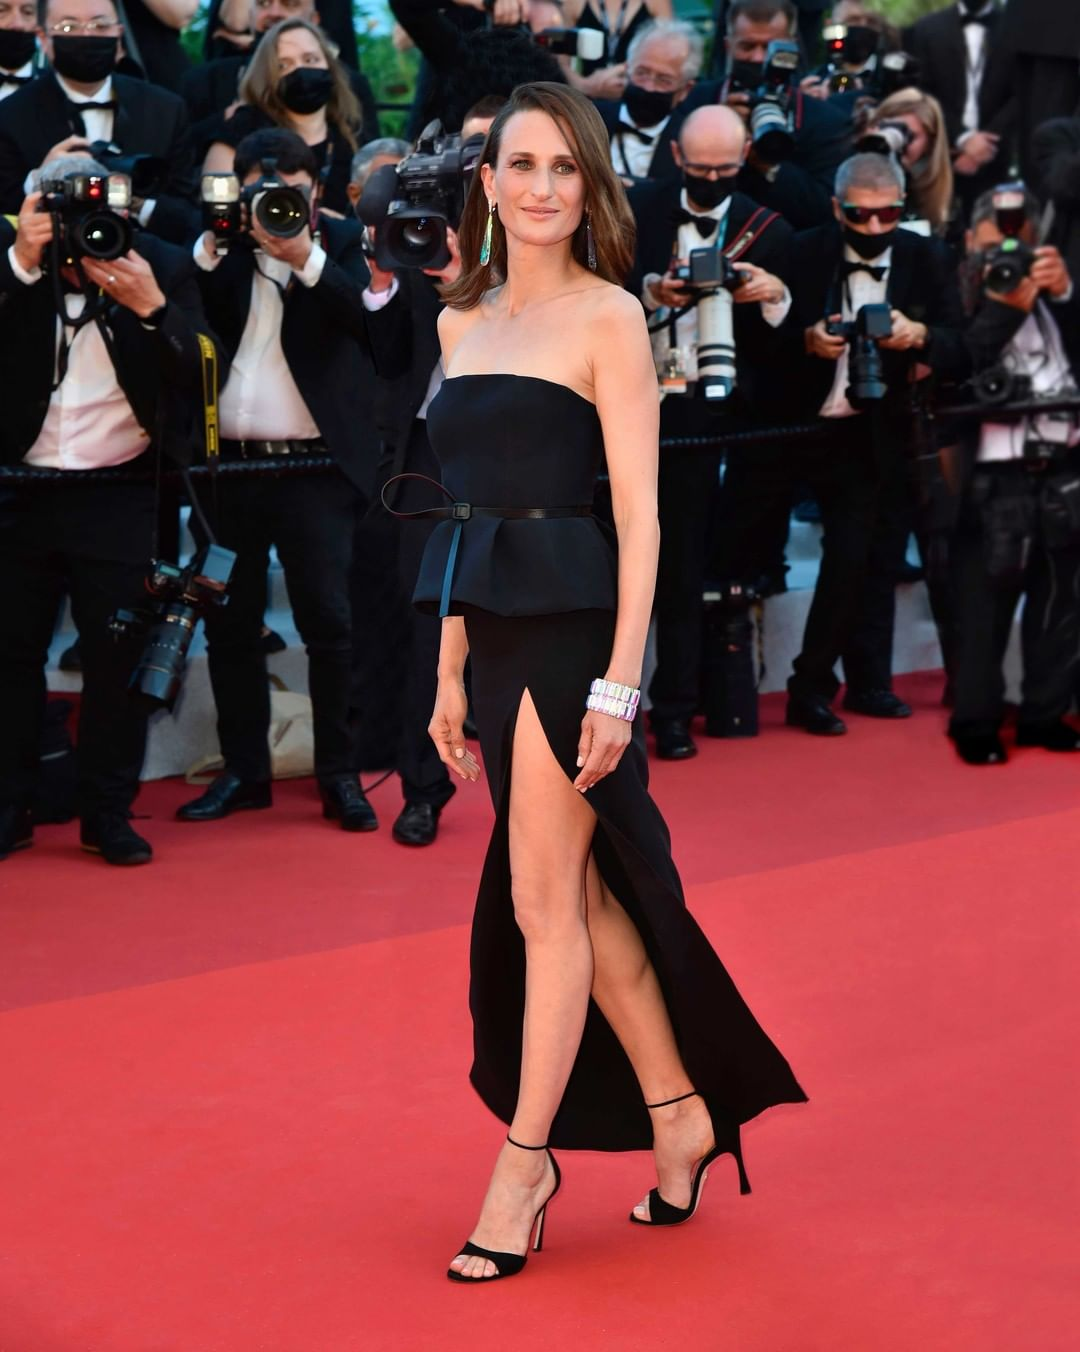 Actress Camille Cottin walked the red carpet at the 74th Festival de Cannes